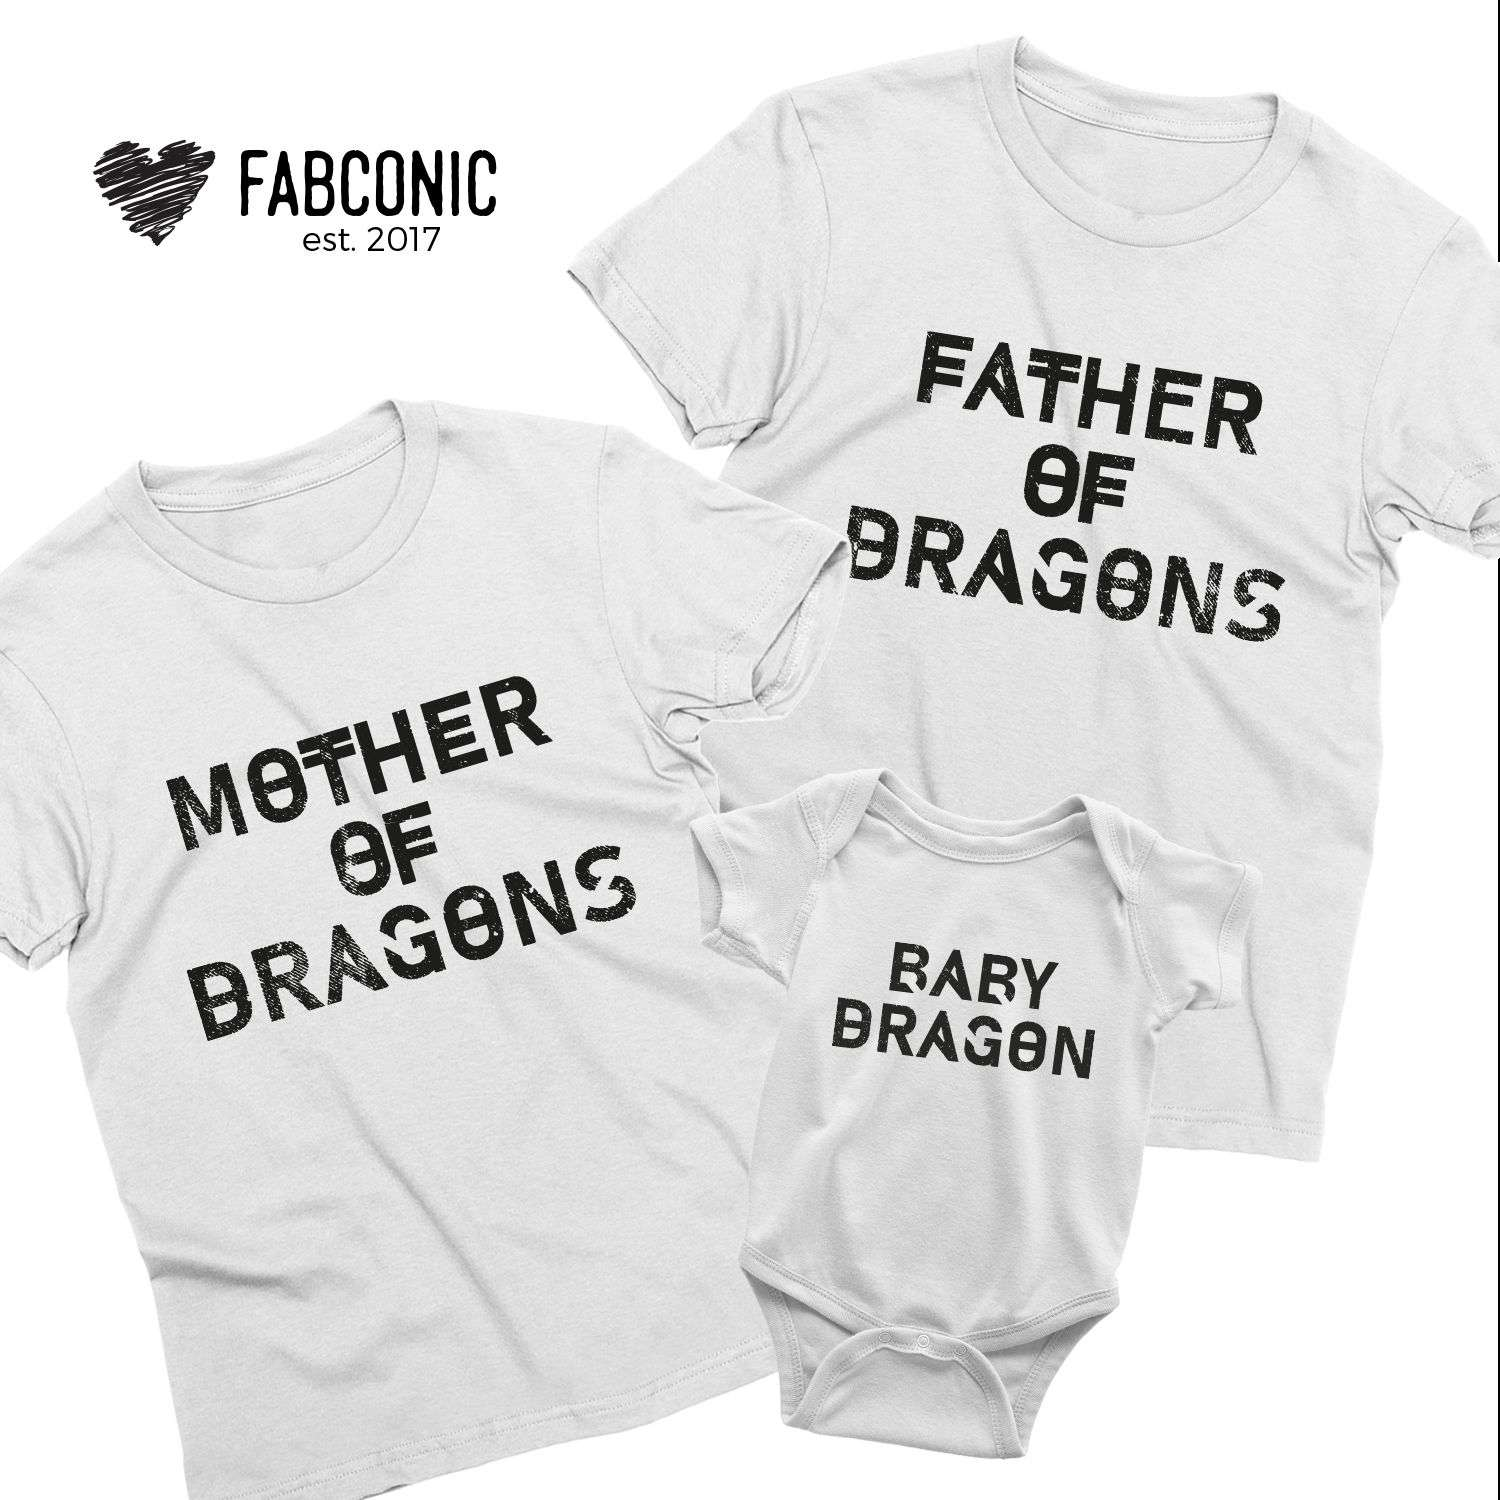 Dragons Family Set Mother Of Dragons Game of Thrones Father Of Dragons Baby Dragon Parent Child Mothers Day Fathers Day Mattching Family Set